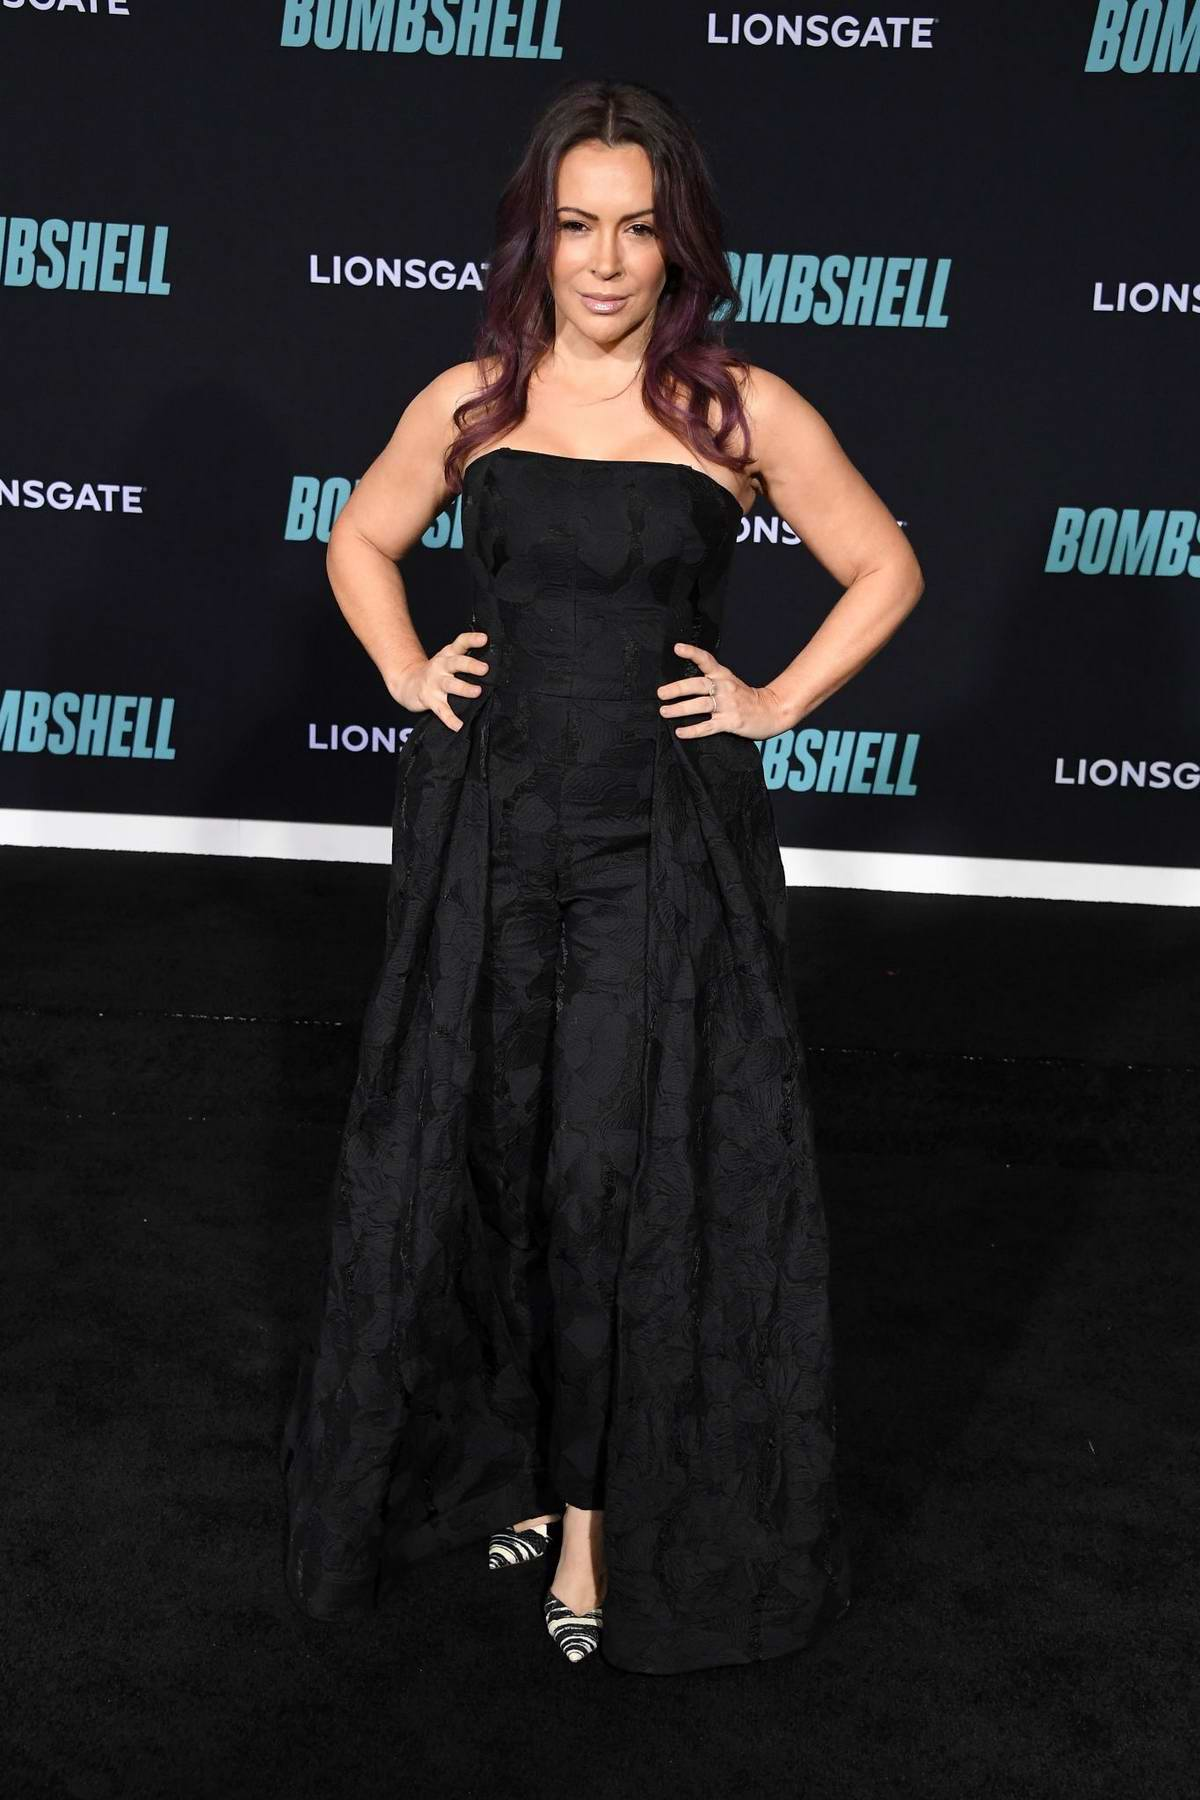 Alyssa Milano attends a special screening of Bombshell in Westwood, California